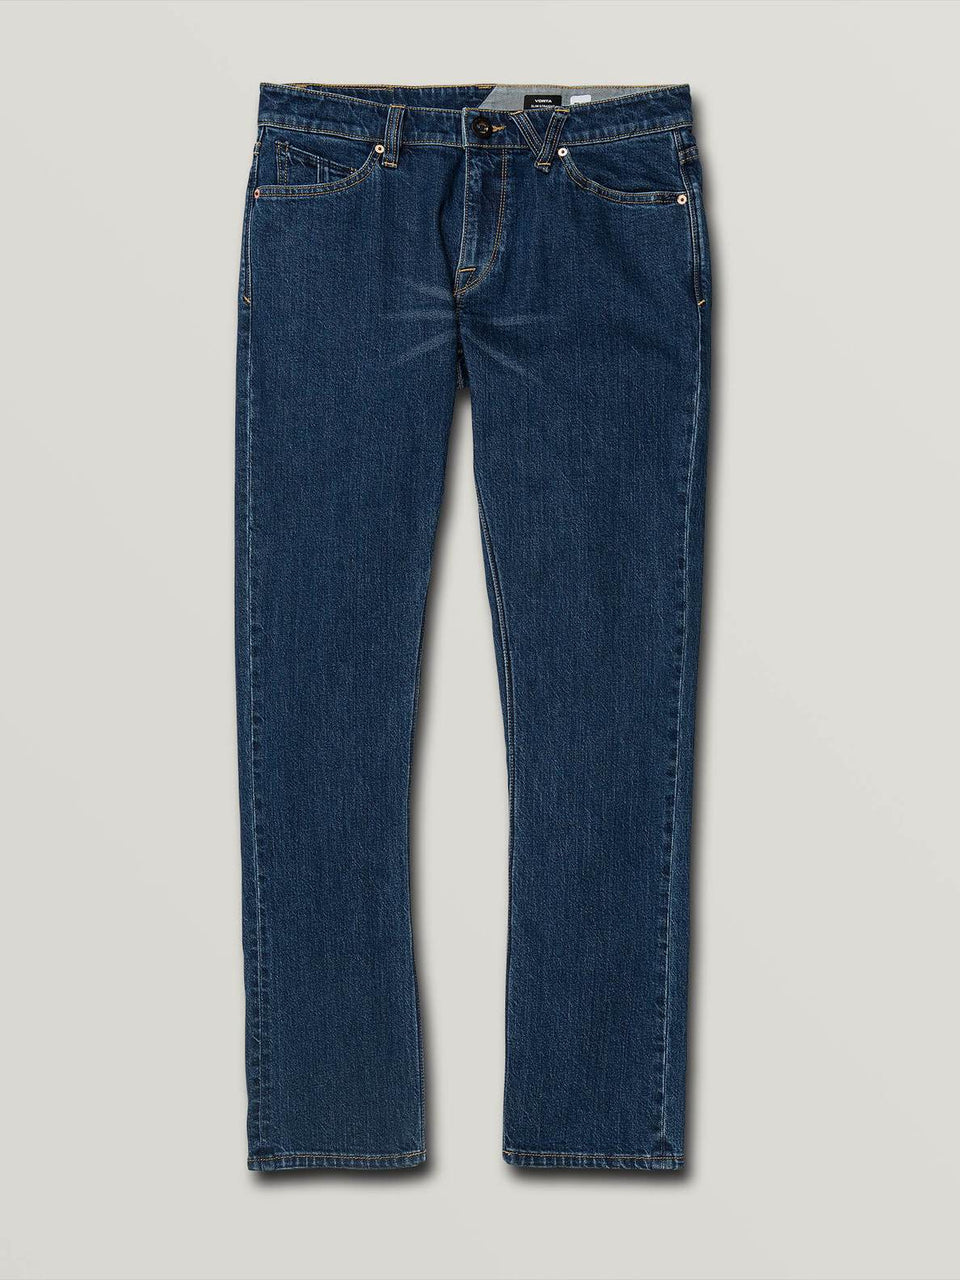 Volcom - Vorta 5 Pocket Denim (Medium Blue Wash) *SALE